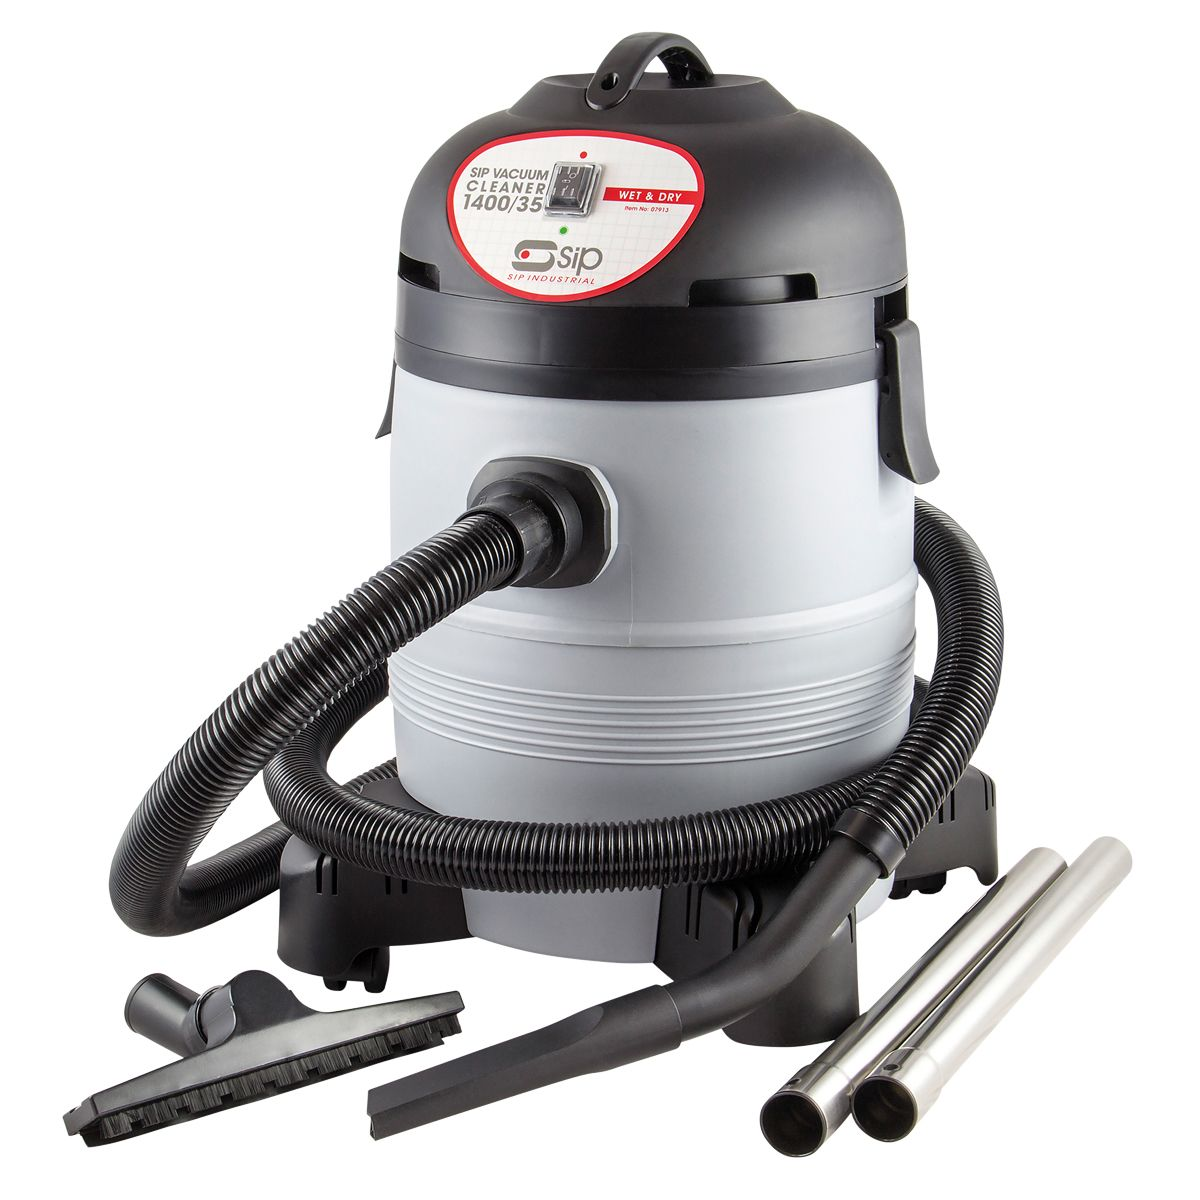 SIP Wet & Dry Vacuum Cleaner 1400w 35 Litre